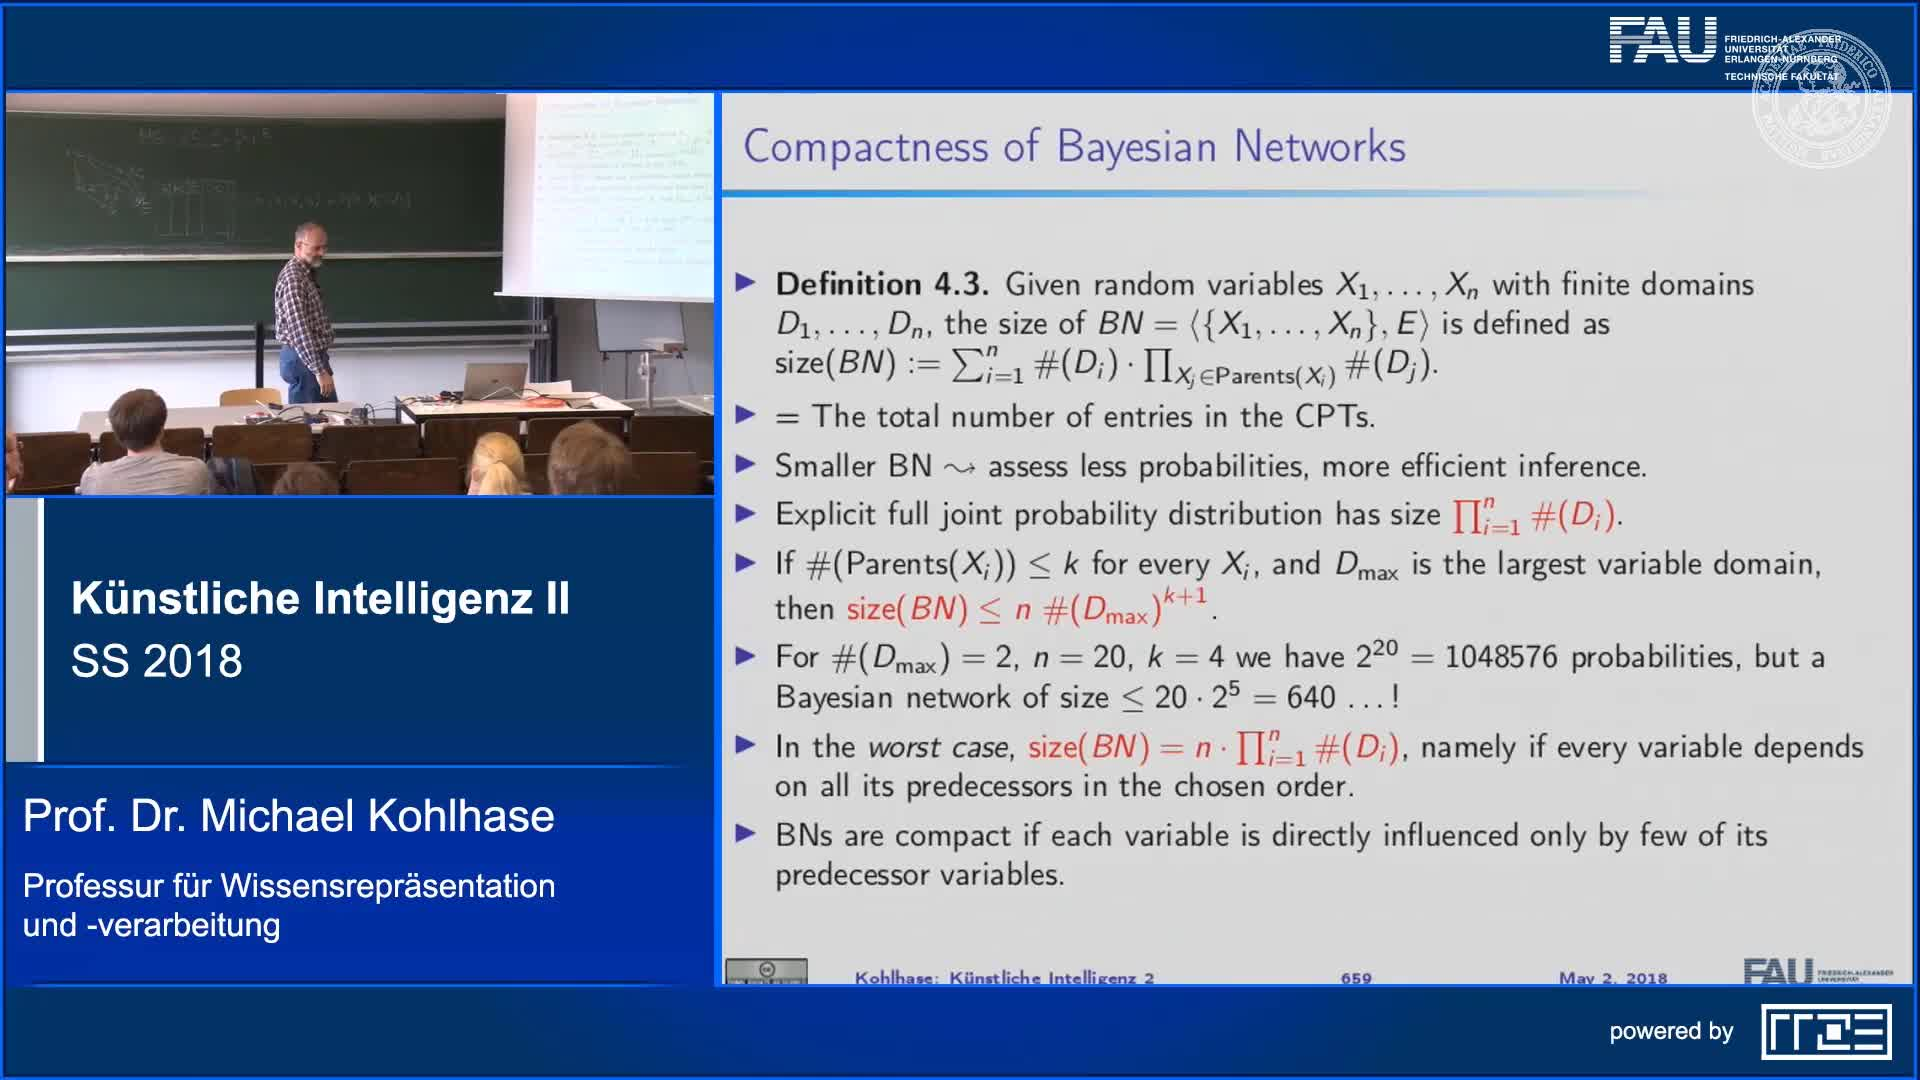 21.4. Constructing Bayesian Networks (Part 2) preview image